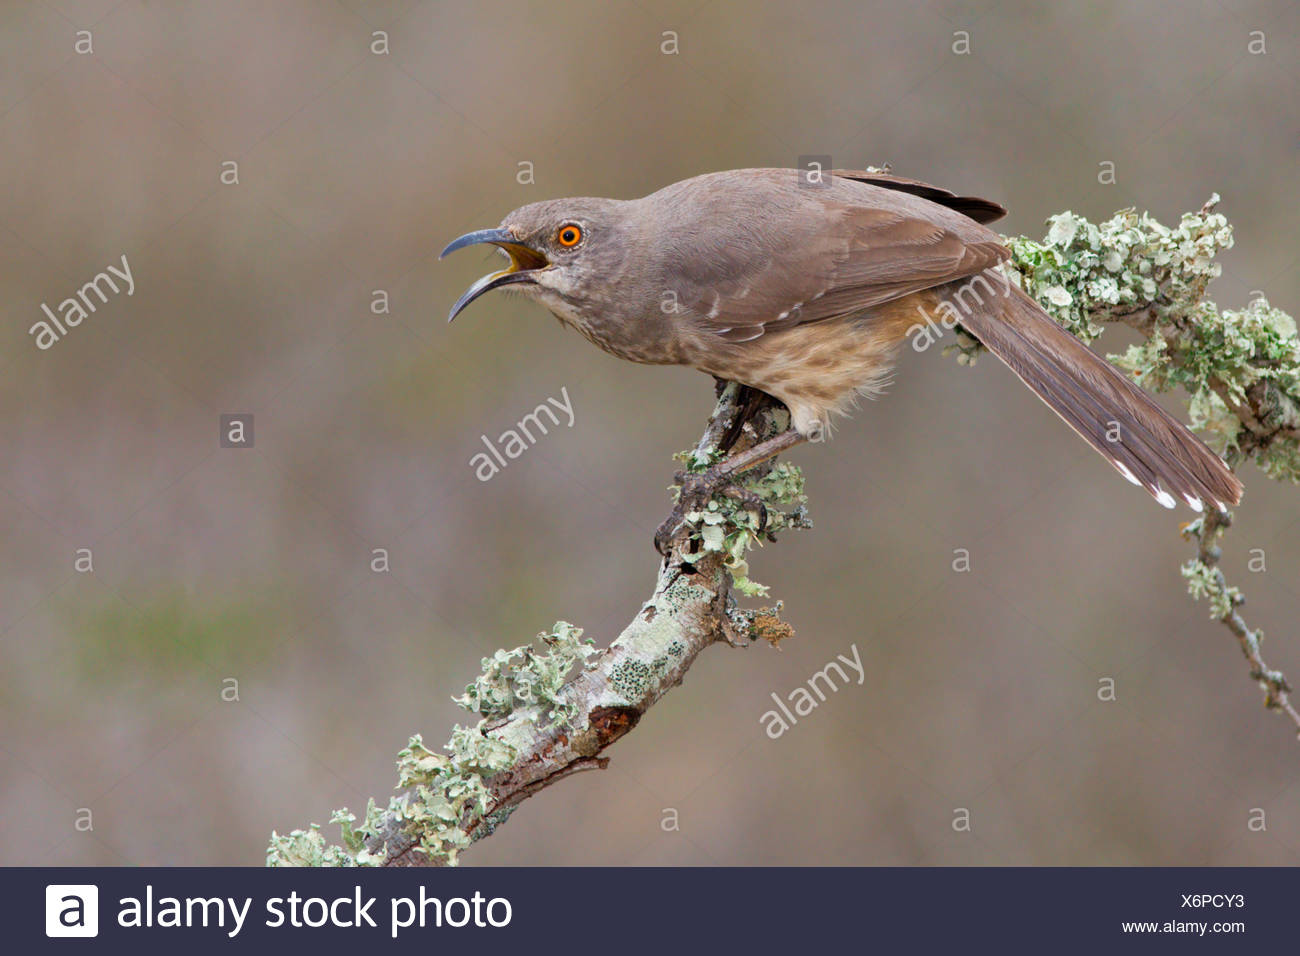 Curve-billed thrasher (Toxostoma curvirostre) perched on a branch at Falcon State Park, Texas - Stock Image